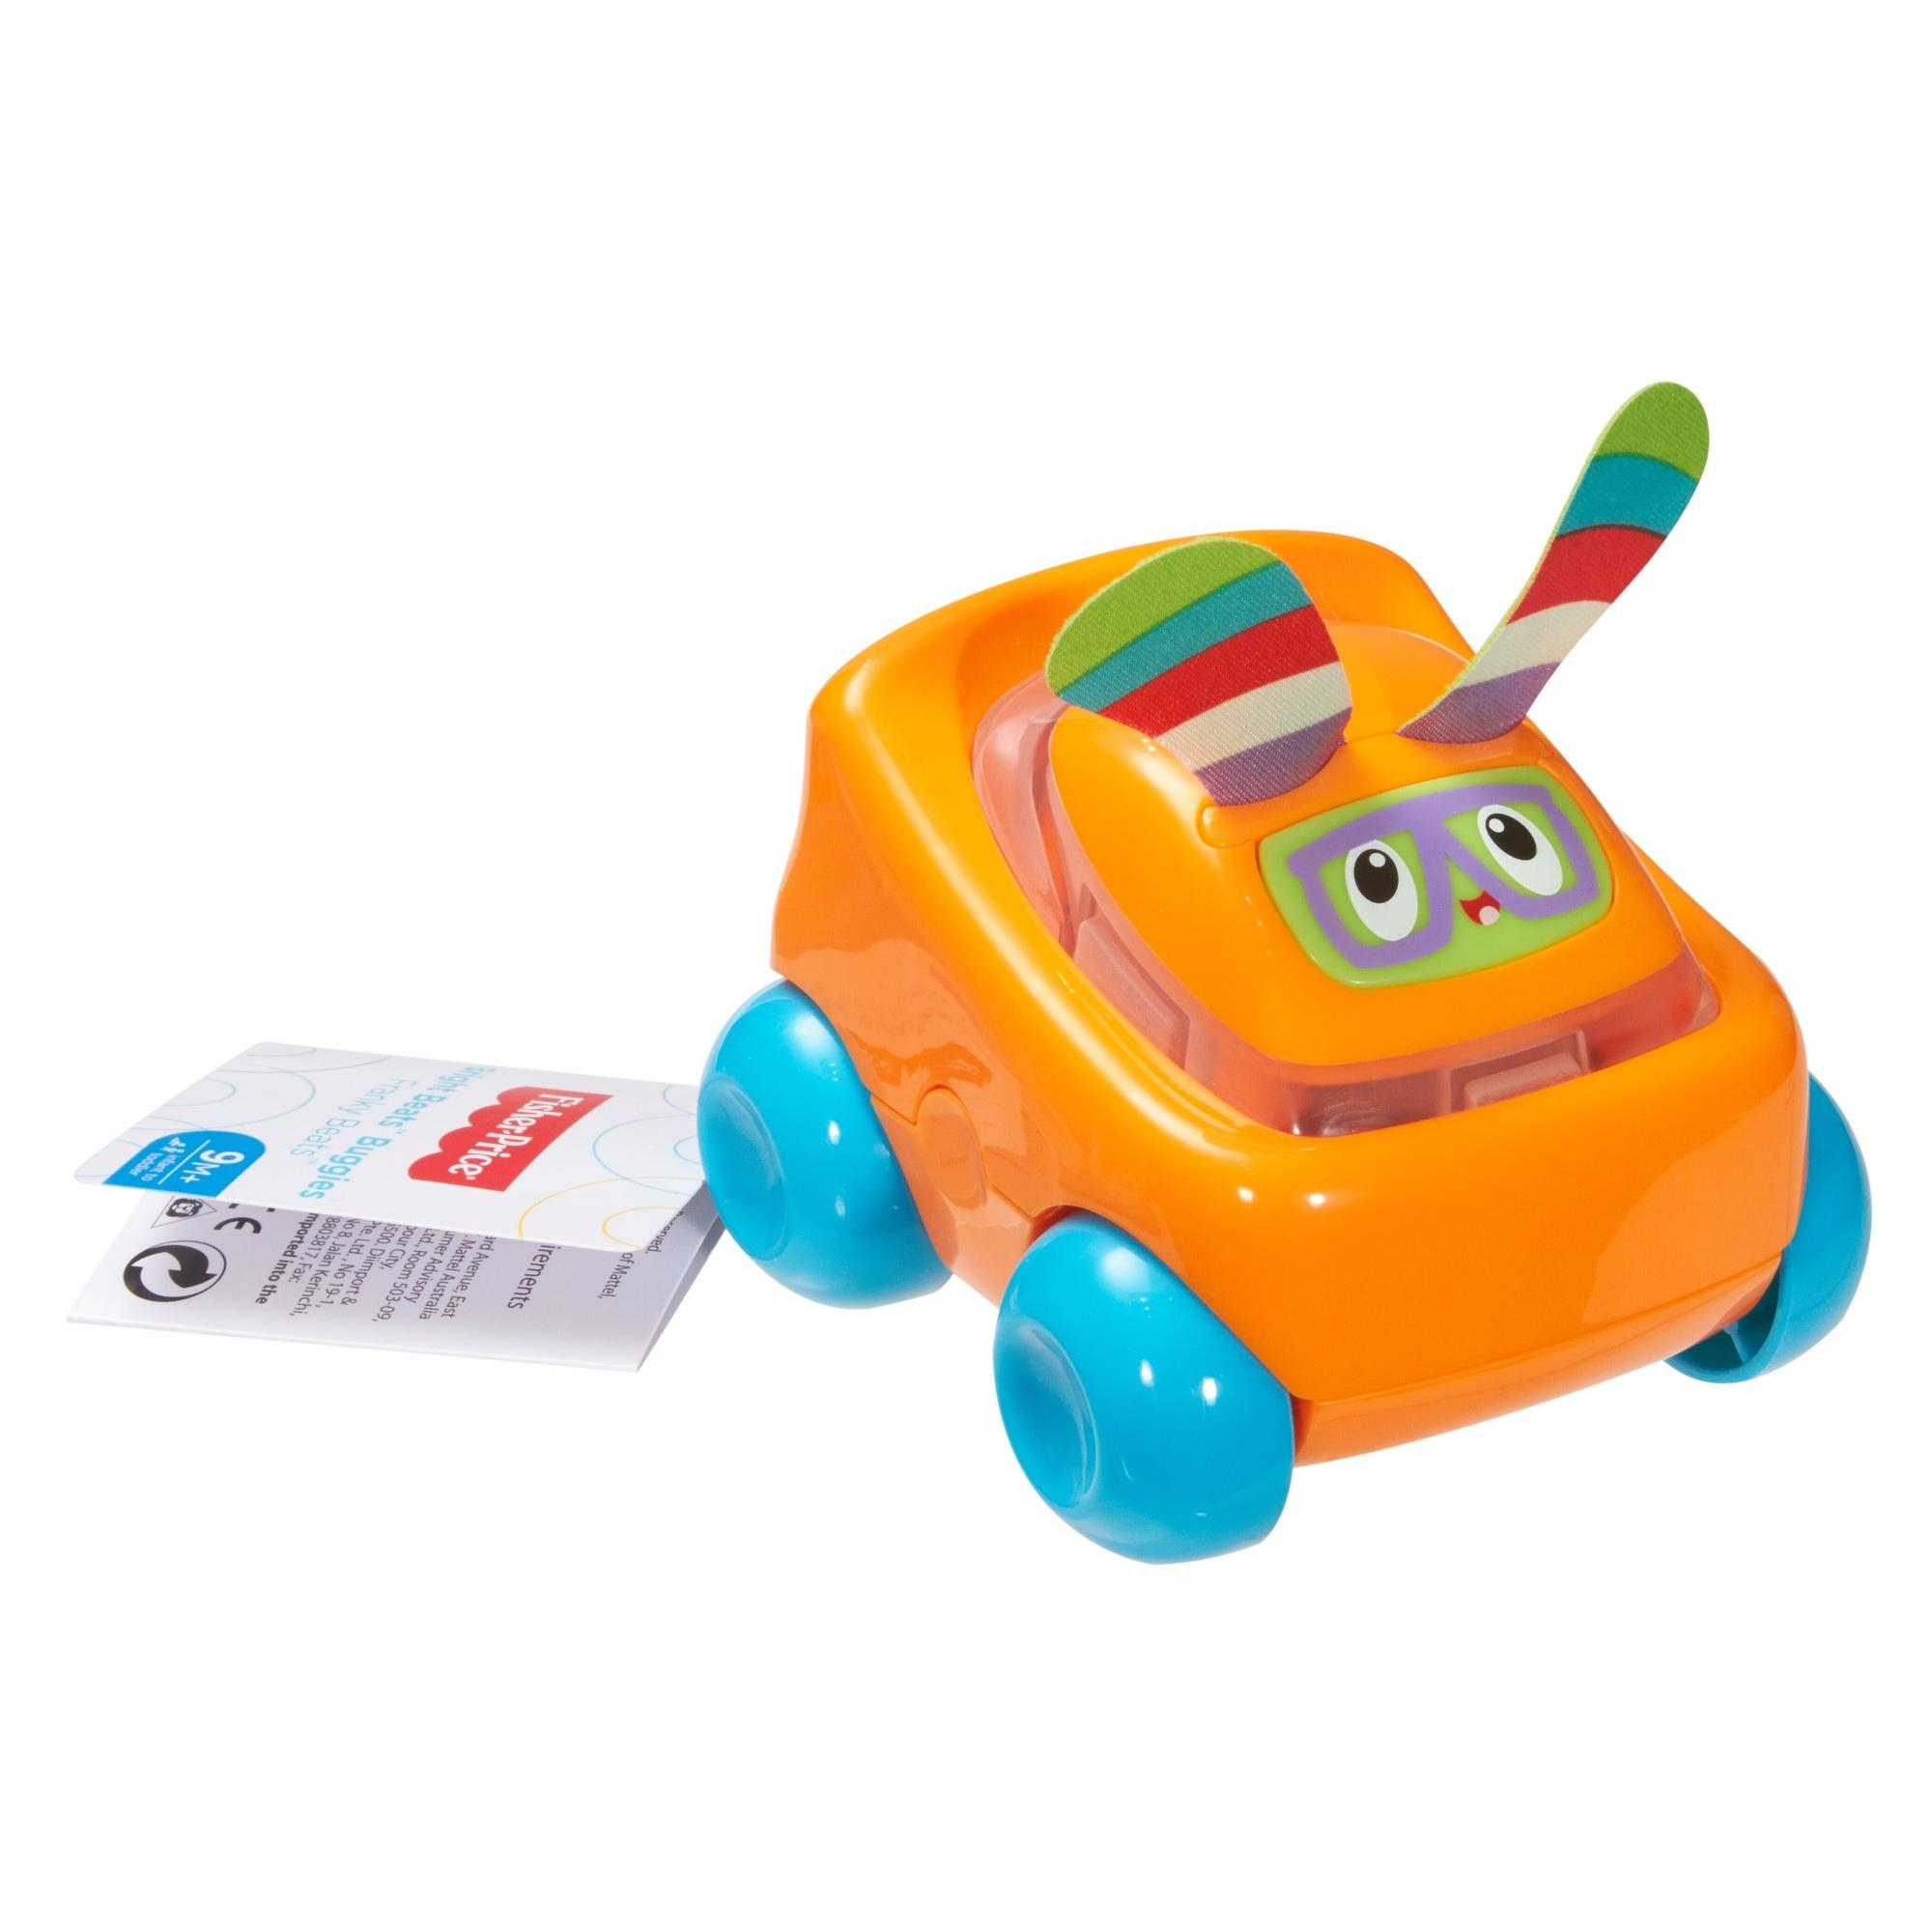 Famed Fisher Price Bright Beats Buggies Franky Beats By At Toy Blaster Fisher Price Bright Beats Touch Play Space Playset Uk Fisher Price Fisher Price Bright Beats Touch Play Space baby Fisher Price Bright Beats Smart Touch Play Space